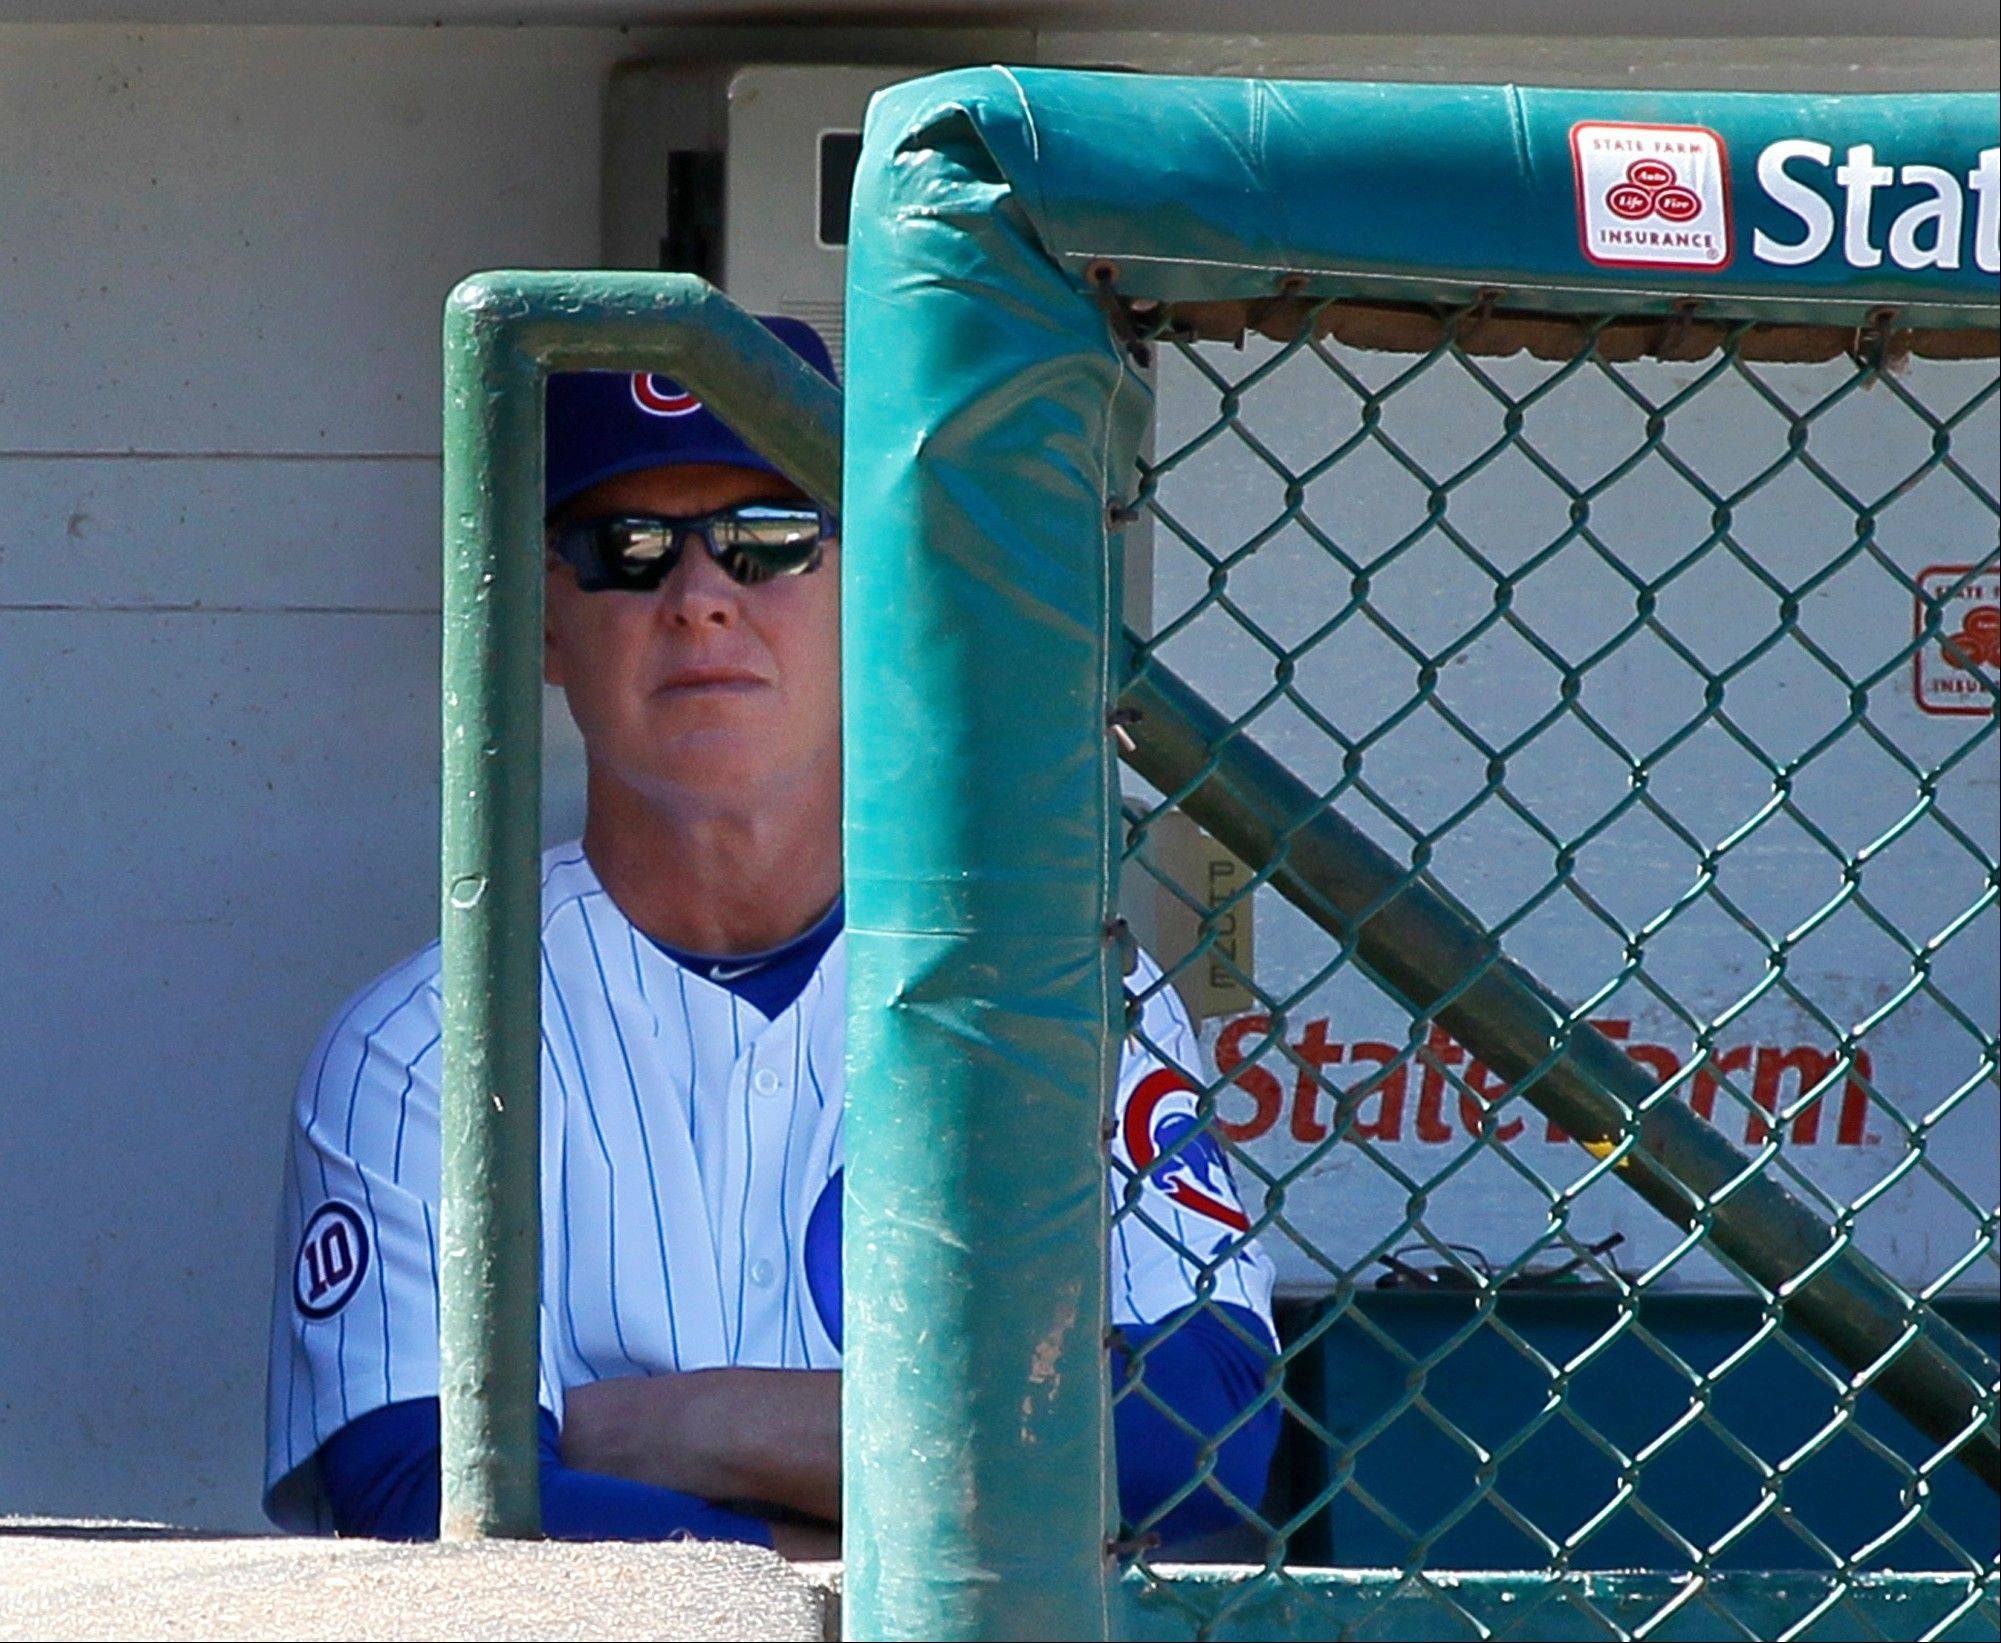 Cubs manager Mike Quade expects to return next season, despite the team's dismal record and numerous changes ahead, including the hiring of a new general manager.